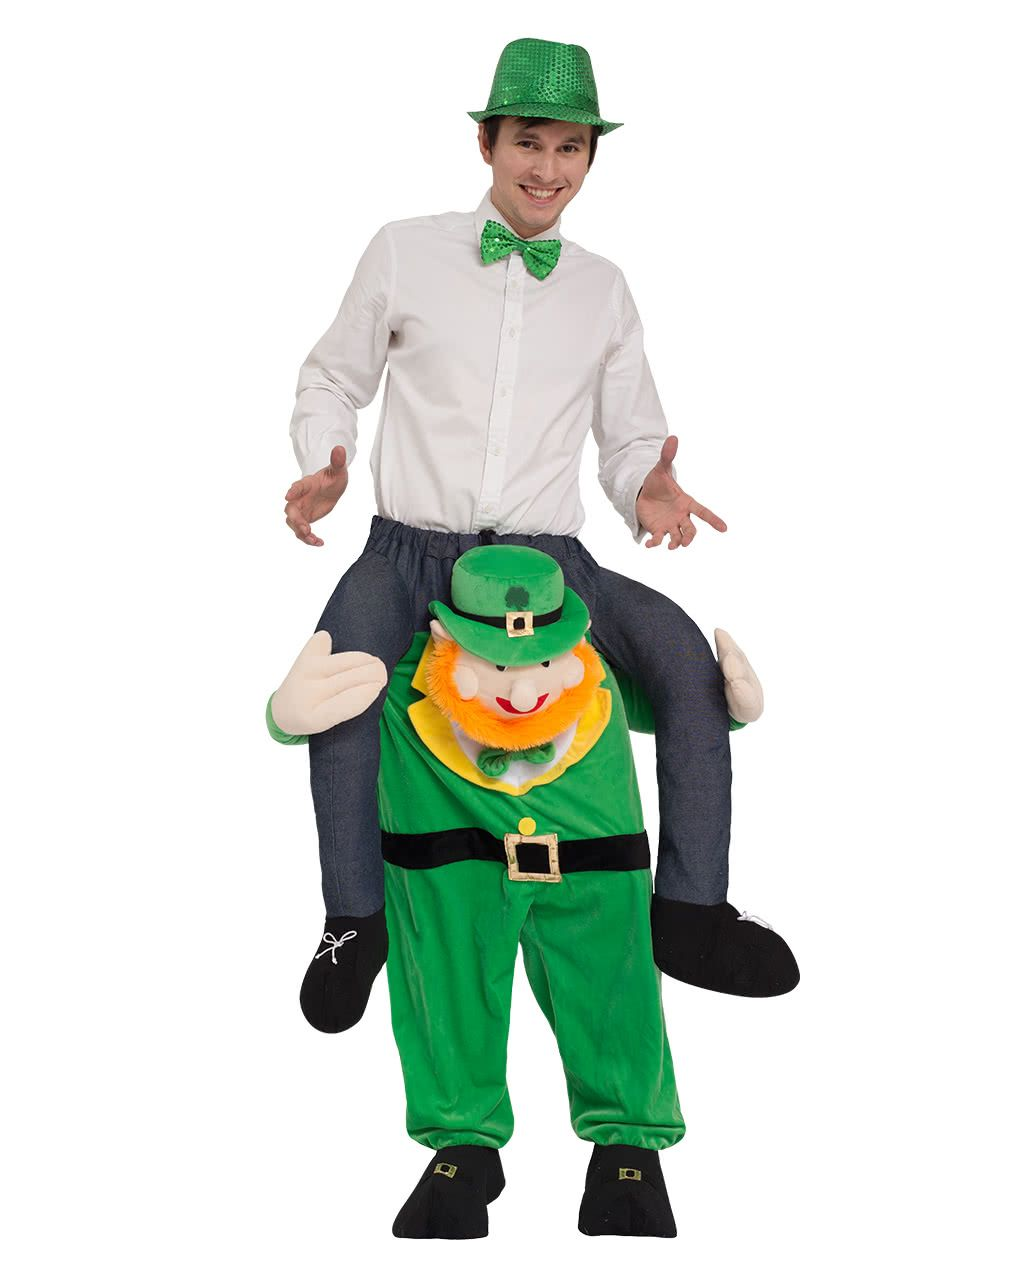 Elegant We Have Rider On Leprechaun Costume Carry Me ✸ Order Fancy Dress Costumes  Online ✓ Dont Delay. Save Now ✓ Crazy Costume Ideas ✪